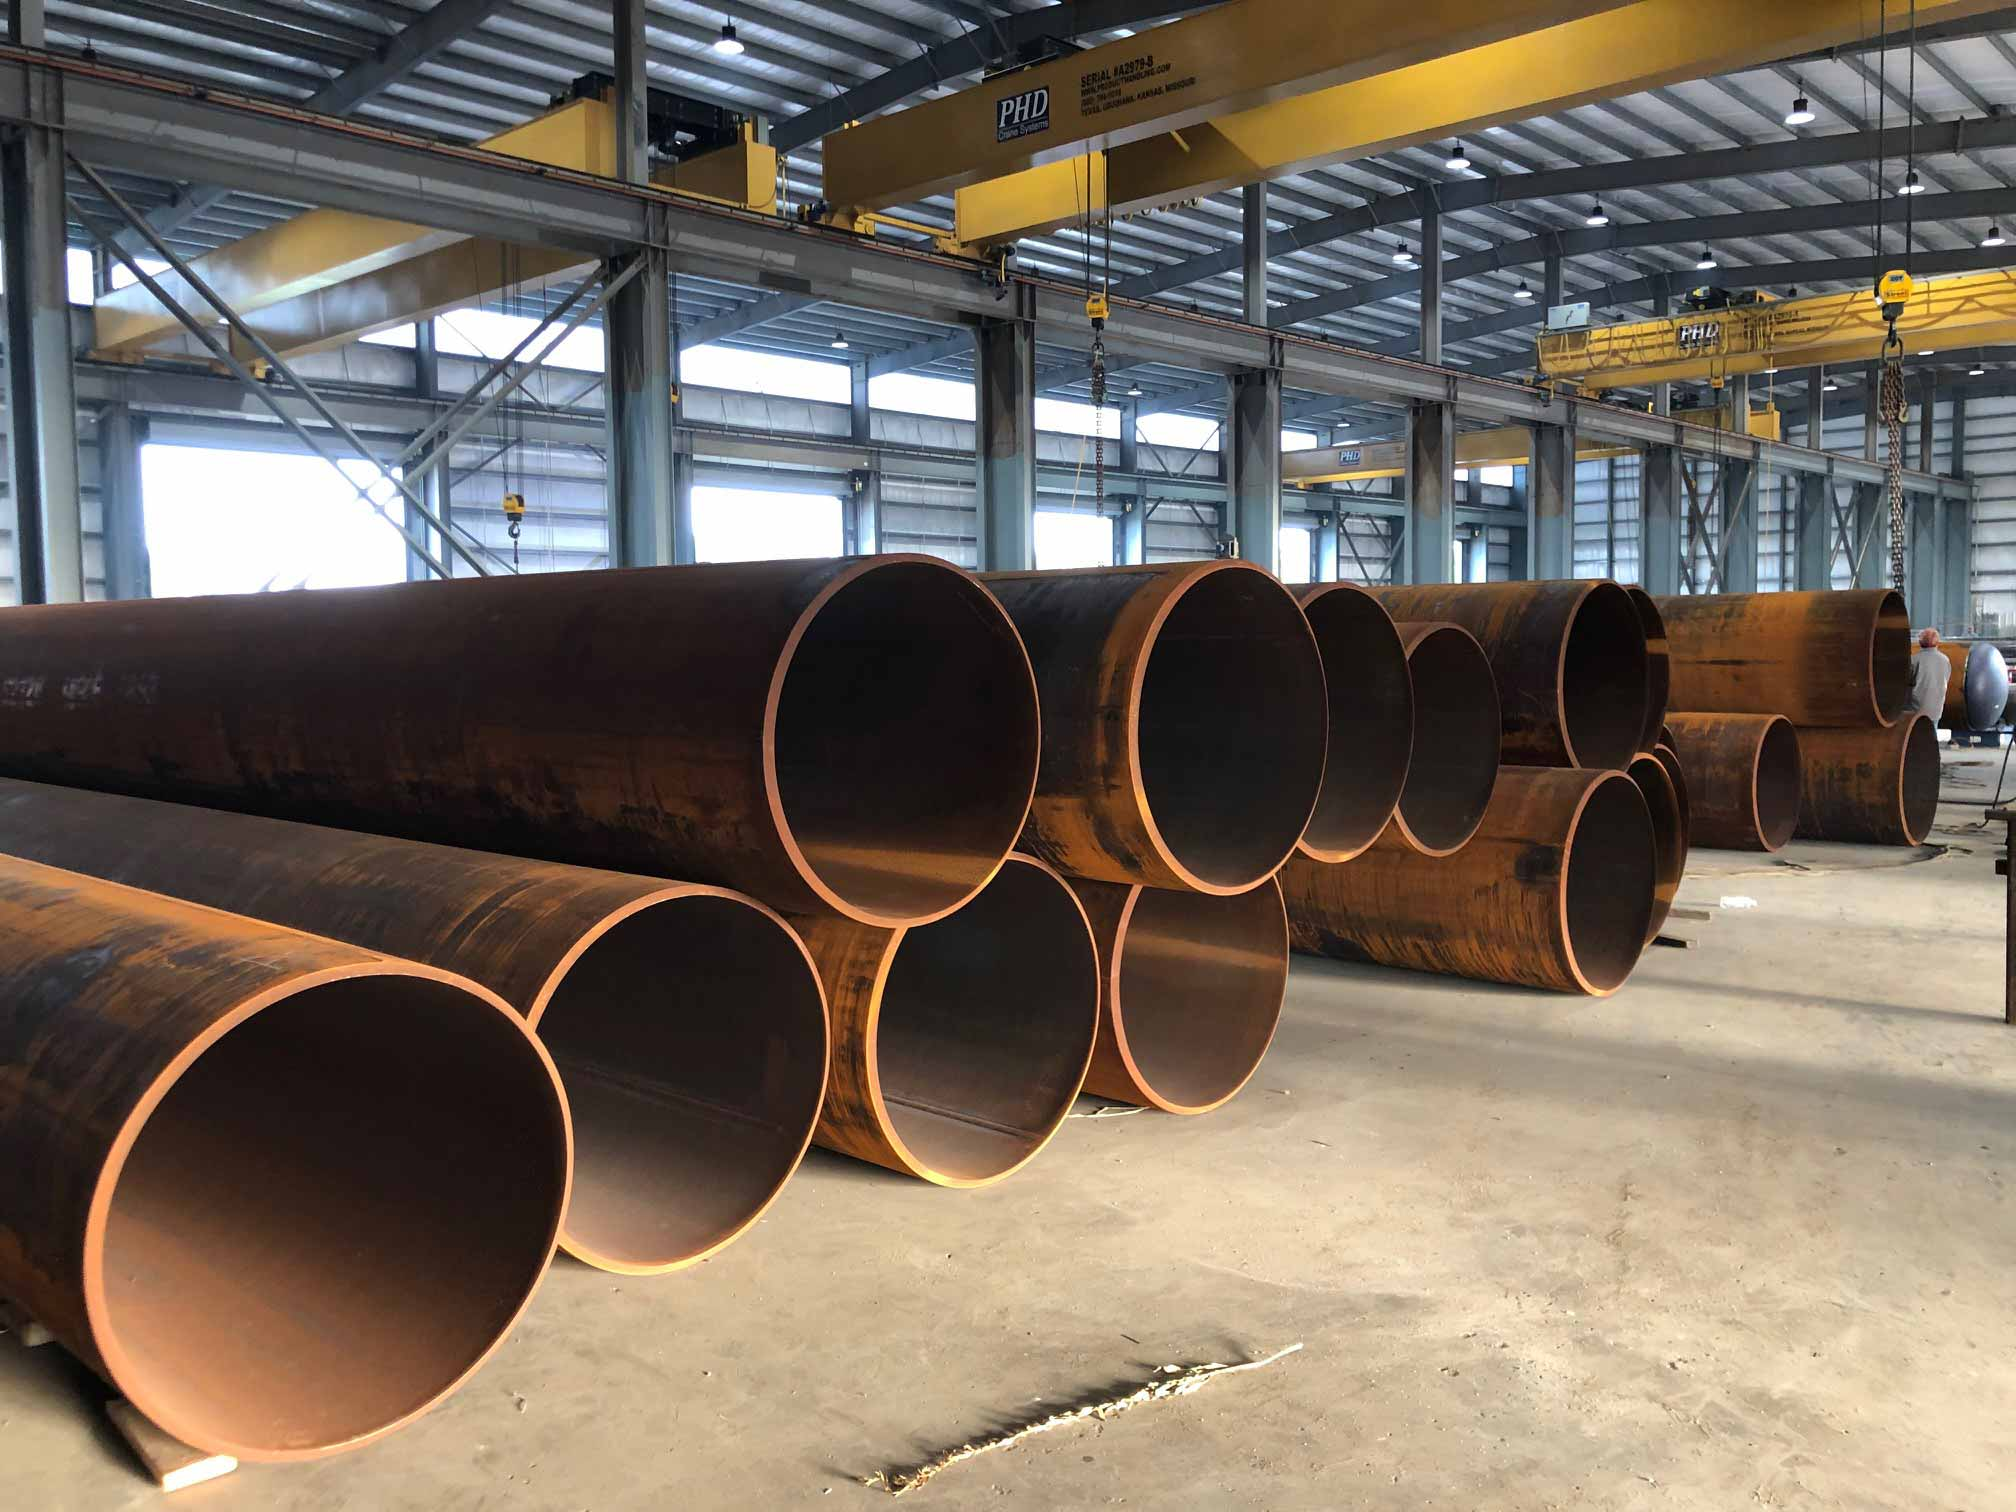 large rolled pipe on shop floor